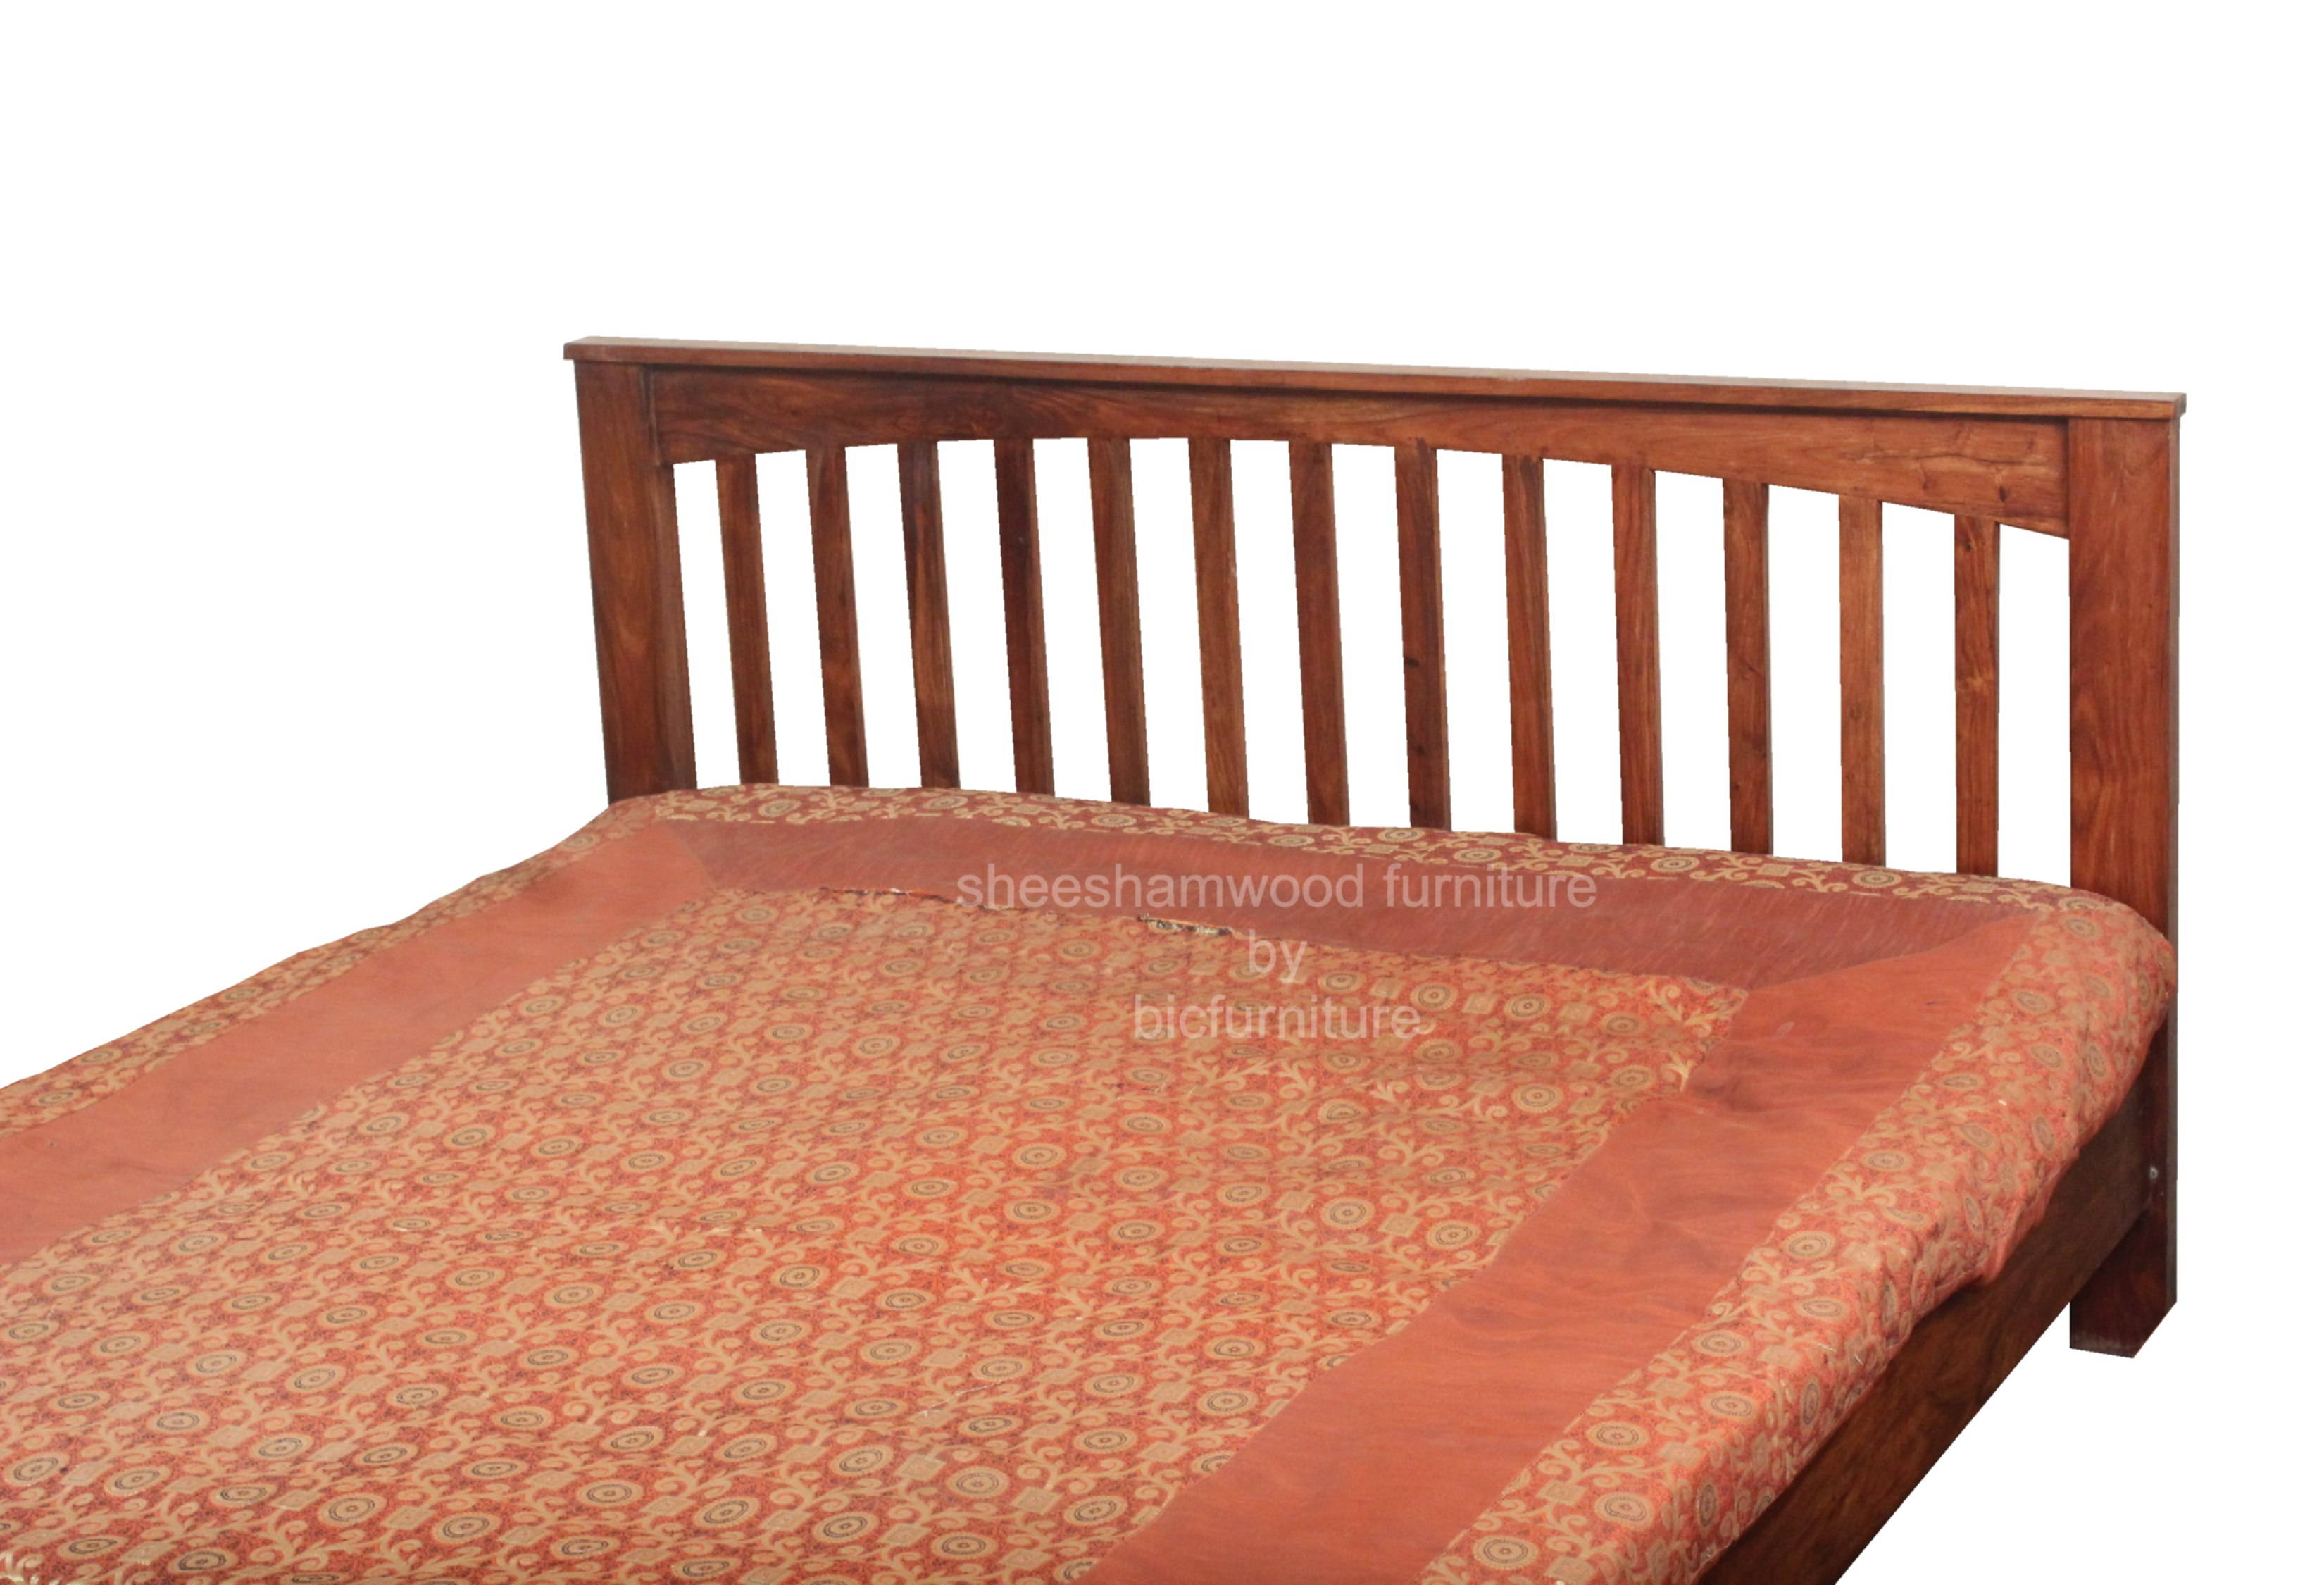 Charmant Double_bed_wooden_solid. Sheesham_bedroom_furniture. Sheesham_beds_mumbai.  Sheesham_furniture_solid. Sheesham_wood_double_bed